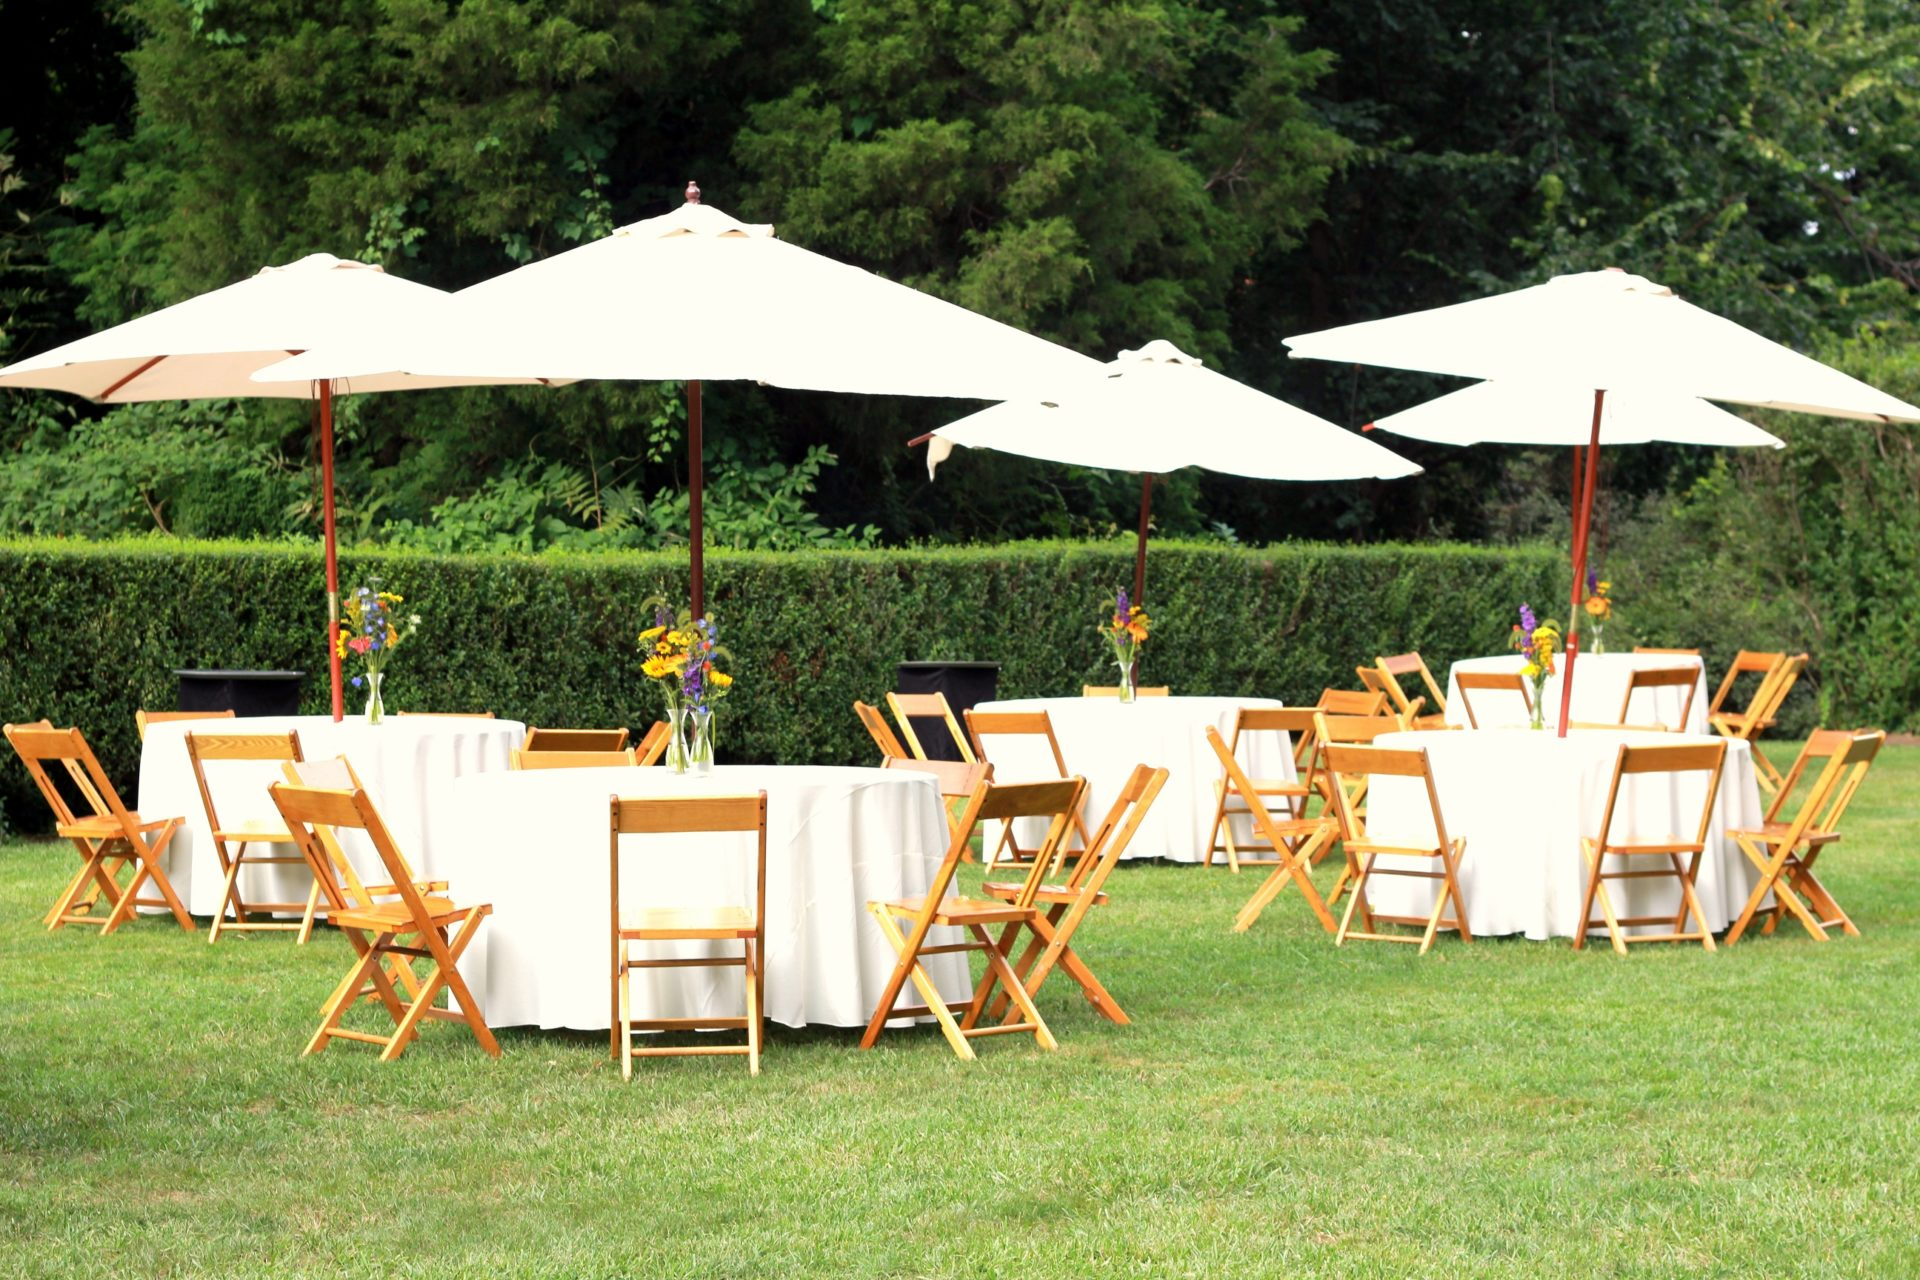 outdoor catering picnic wedding decor reception event party sydney weddings umbrellas events garden table corporate receptions wine chairs tables caterers